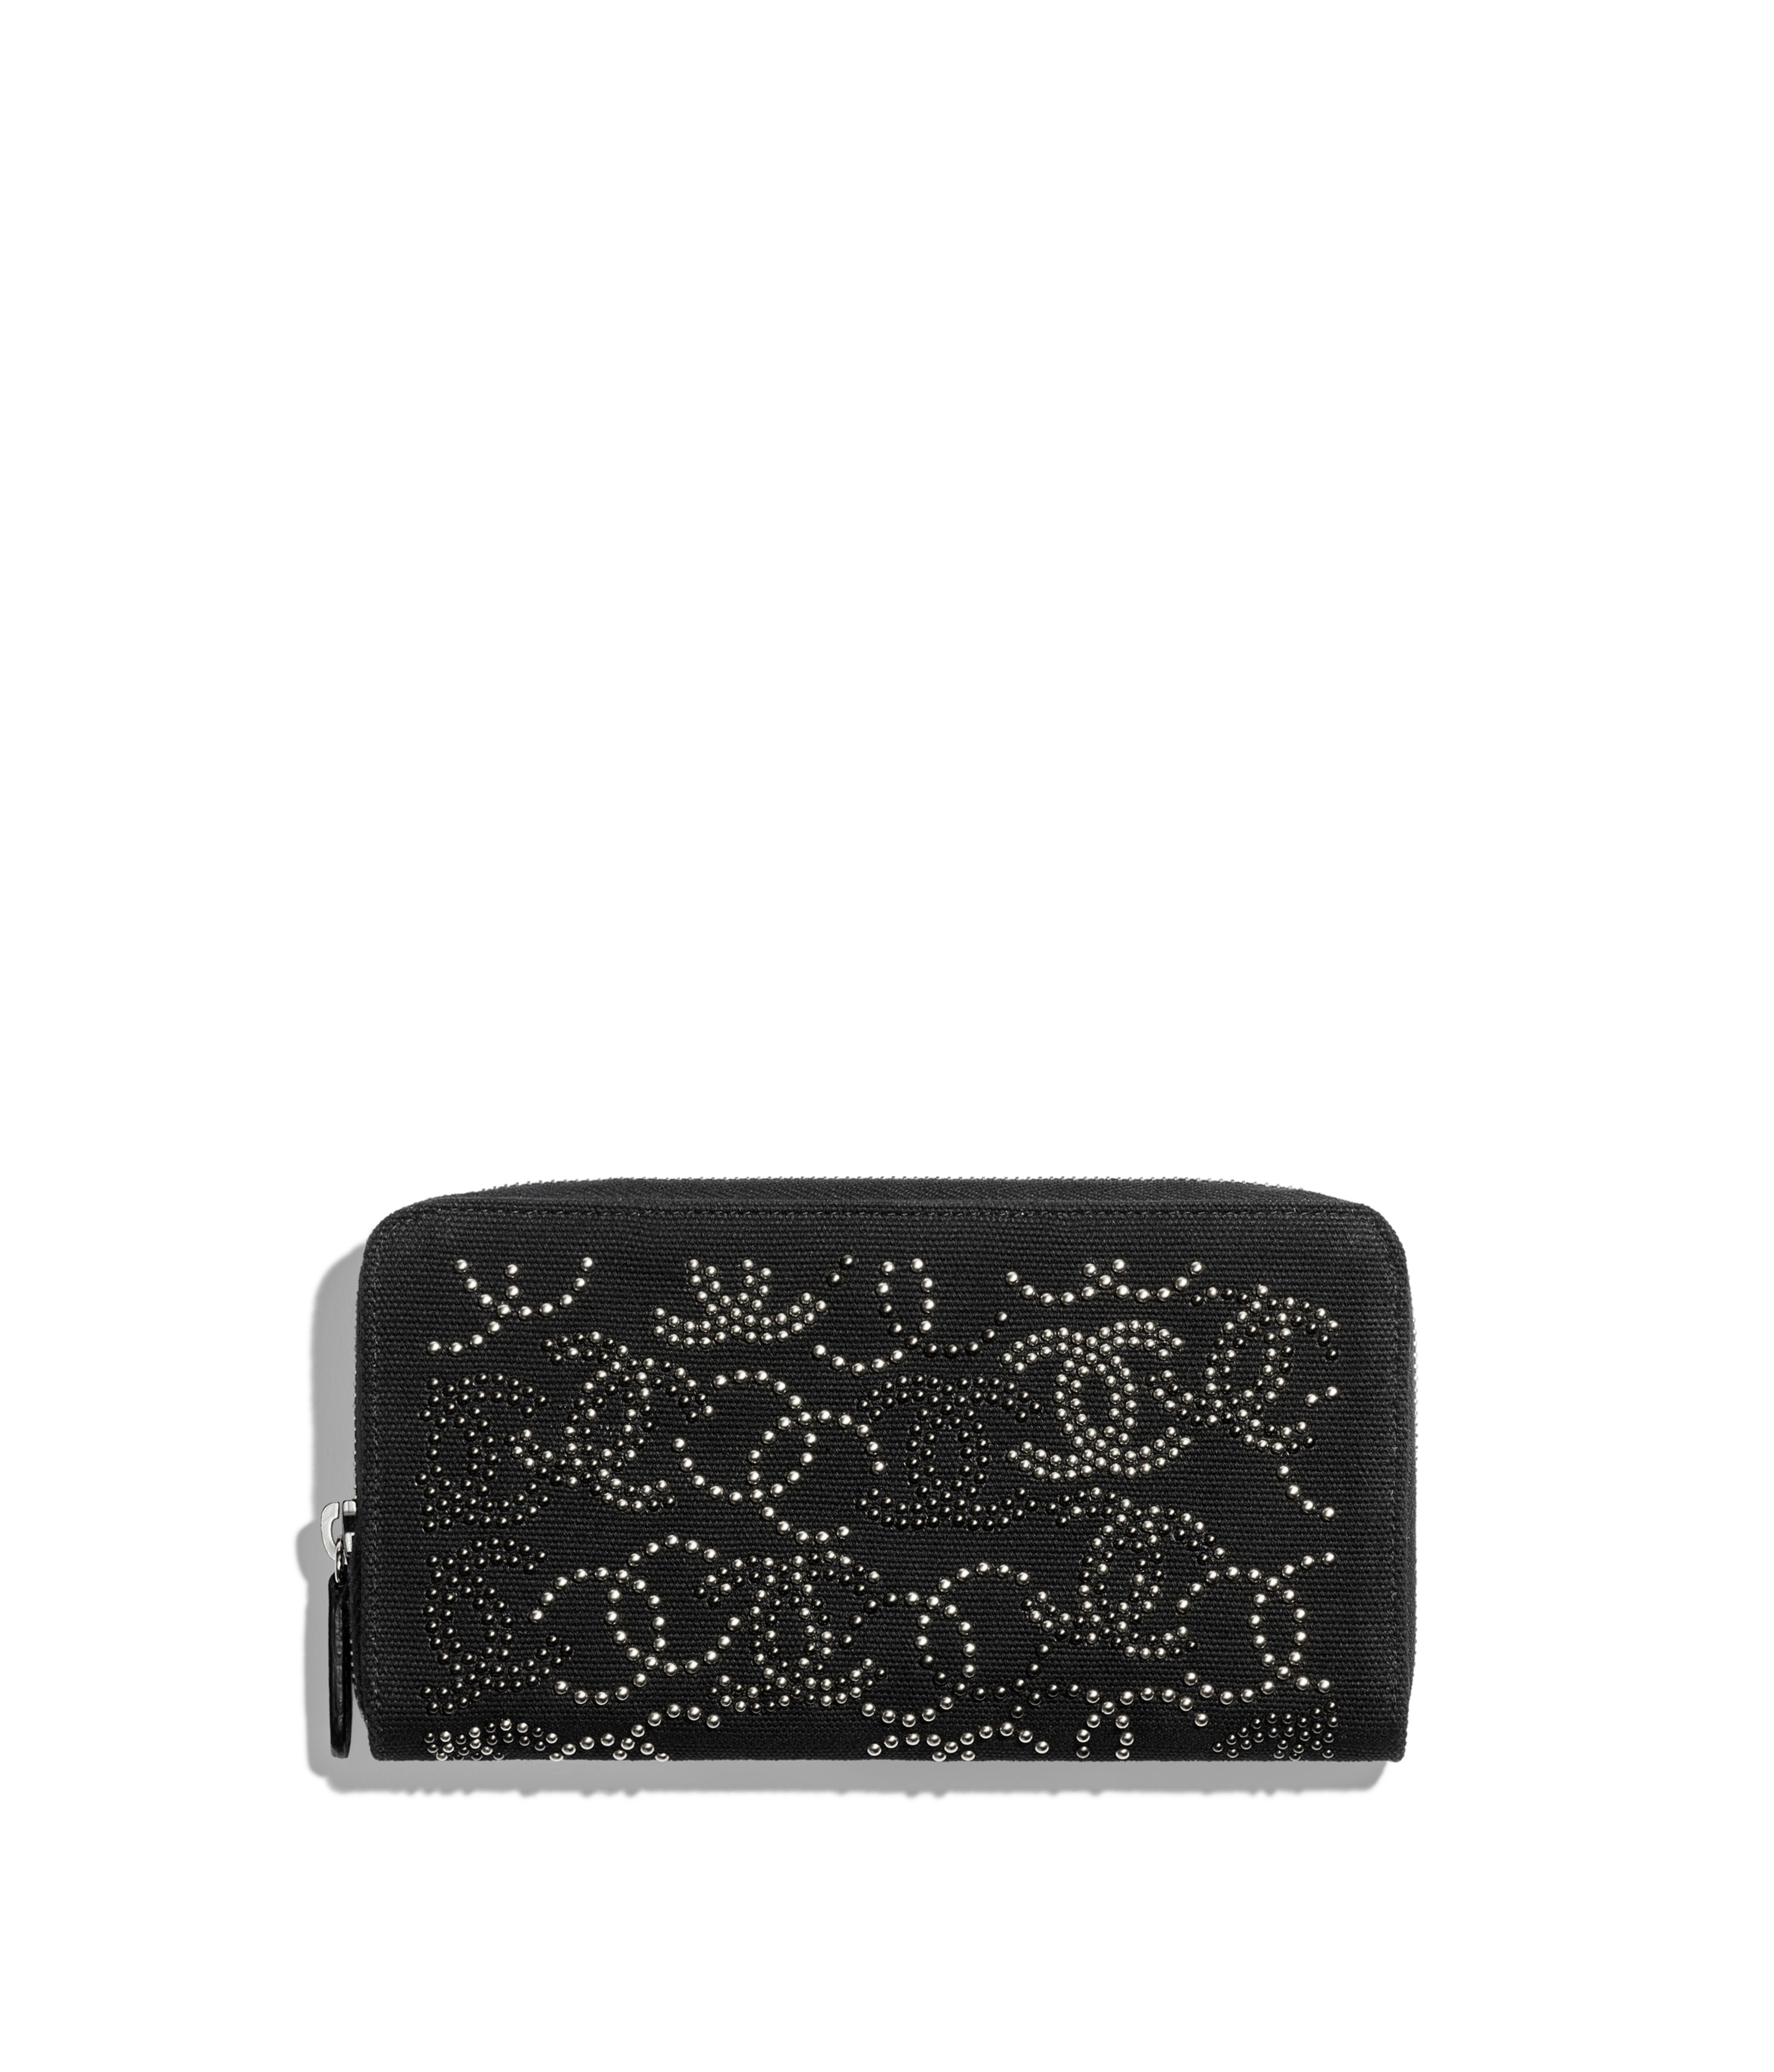 53b8af4ac874 Long Zipped Wallet Cotton, Studs & Ruthenium-Finish Metal, Black Ref.  AP0133B0015094305